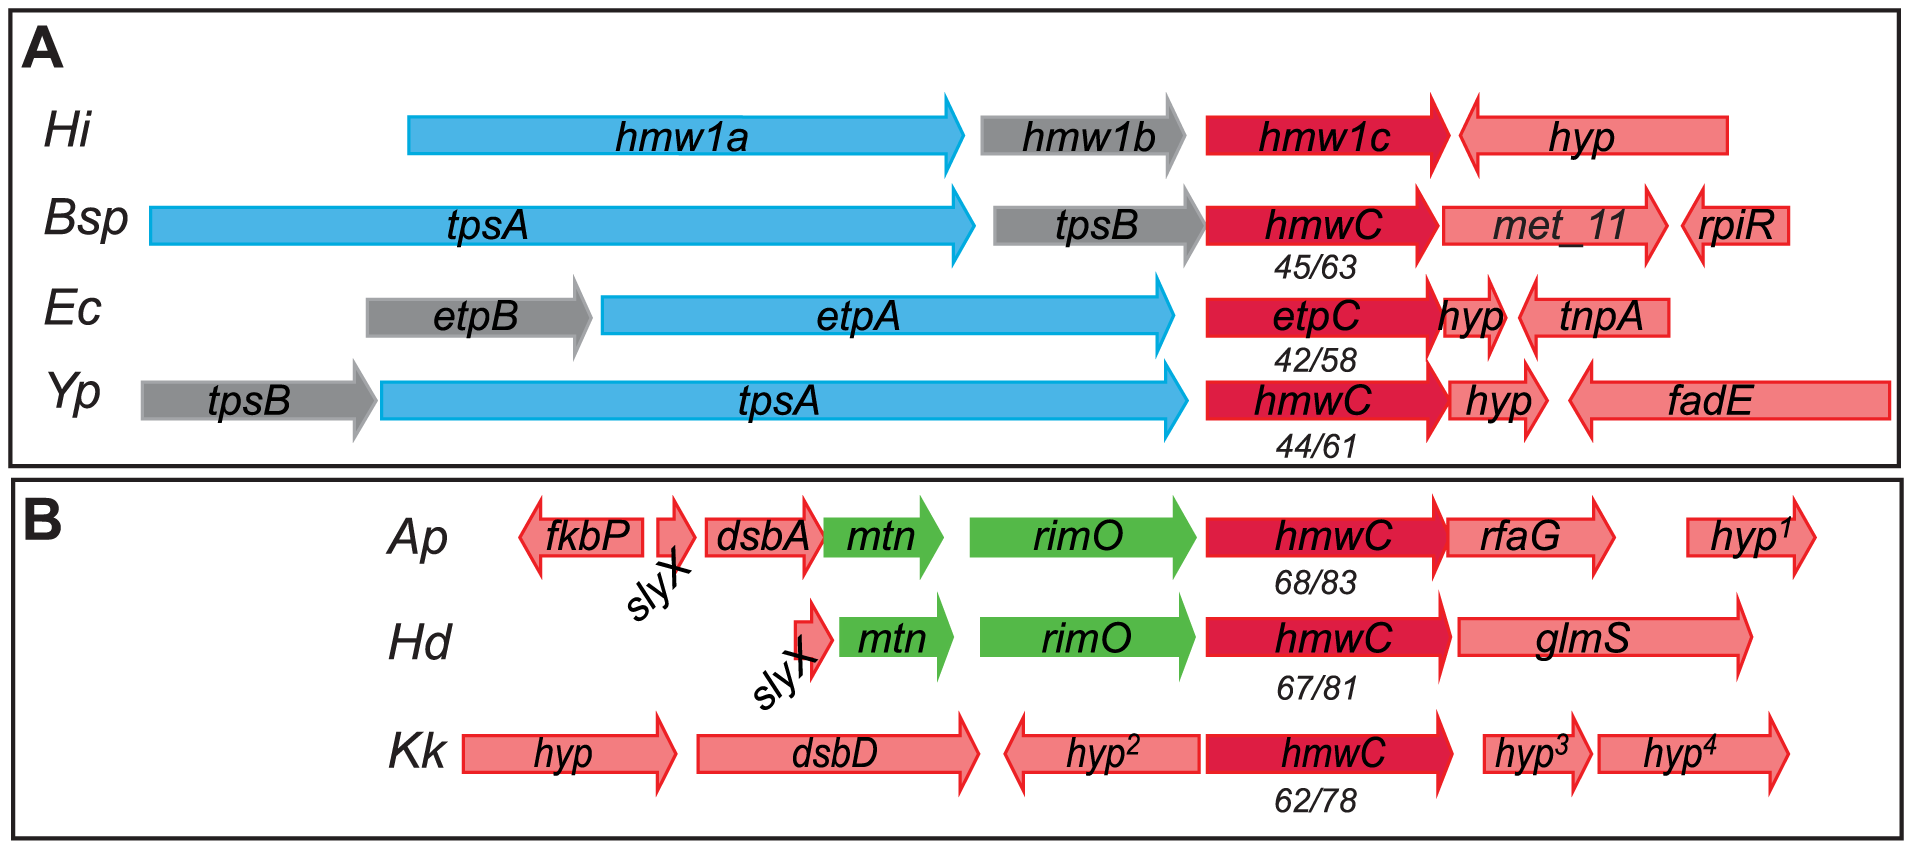 HMW1C-like proteins in two categories: Those encoded by loci that contain obvious substrate genes and those encoded by isolated genes without adjacent substrate genes.